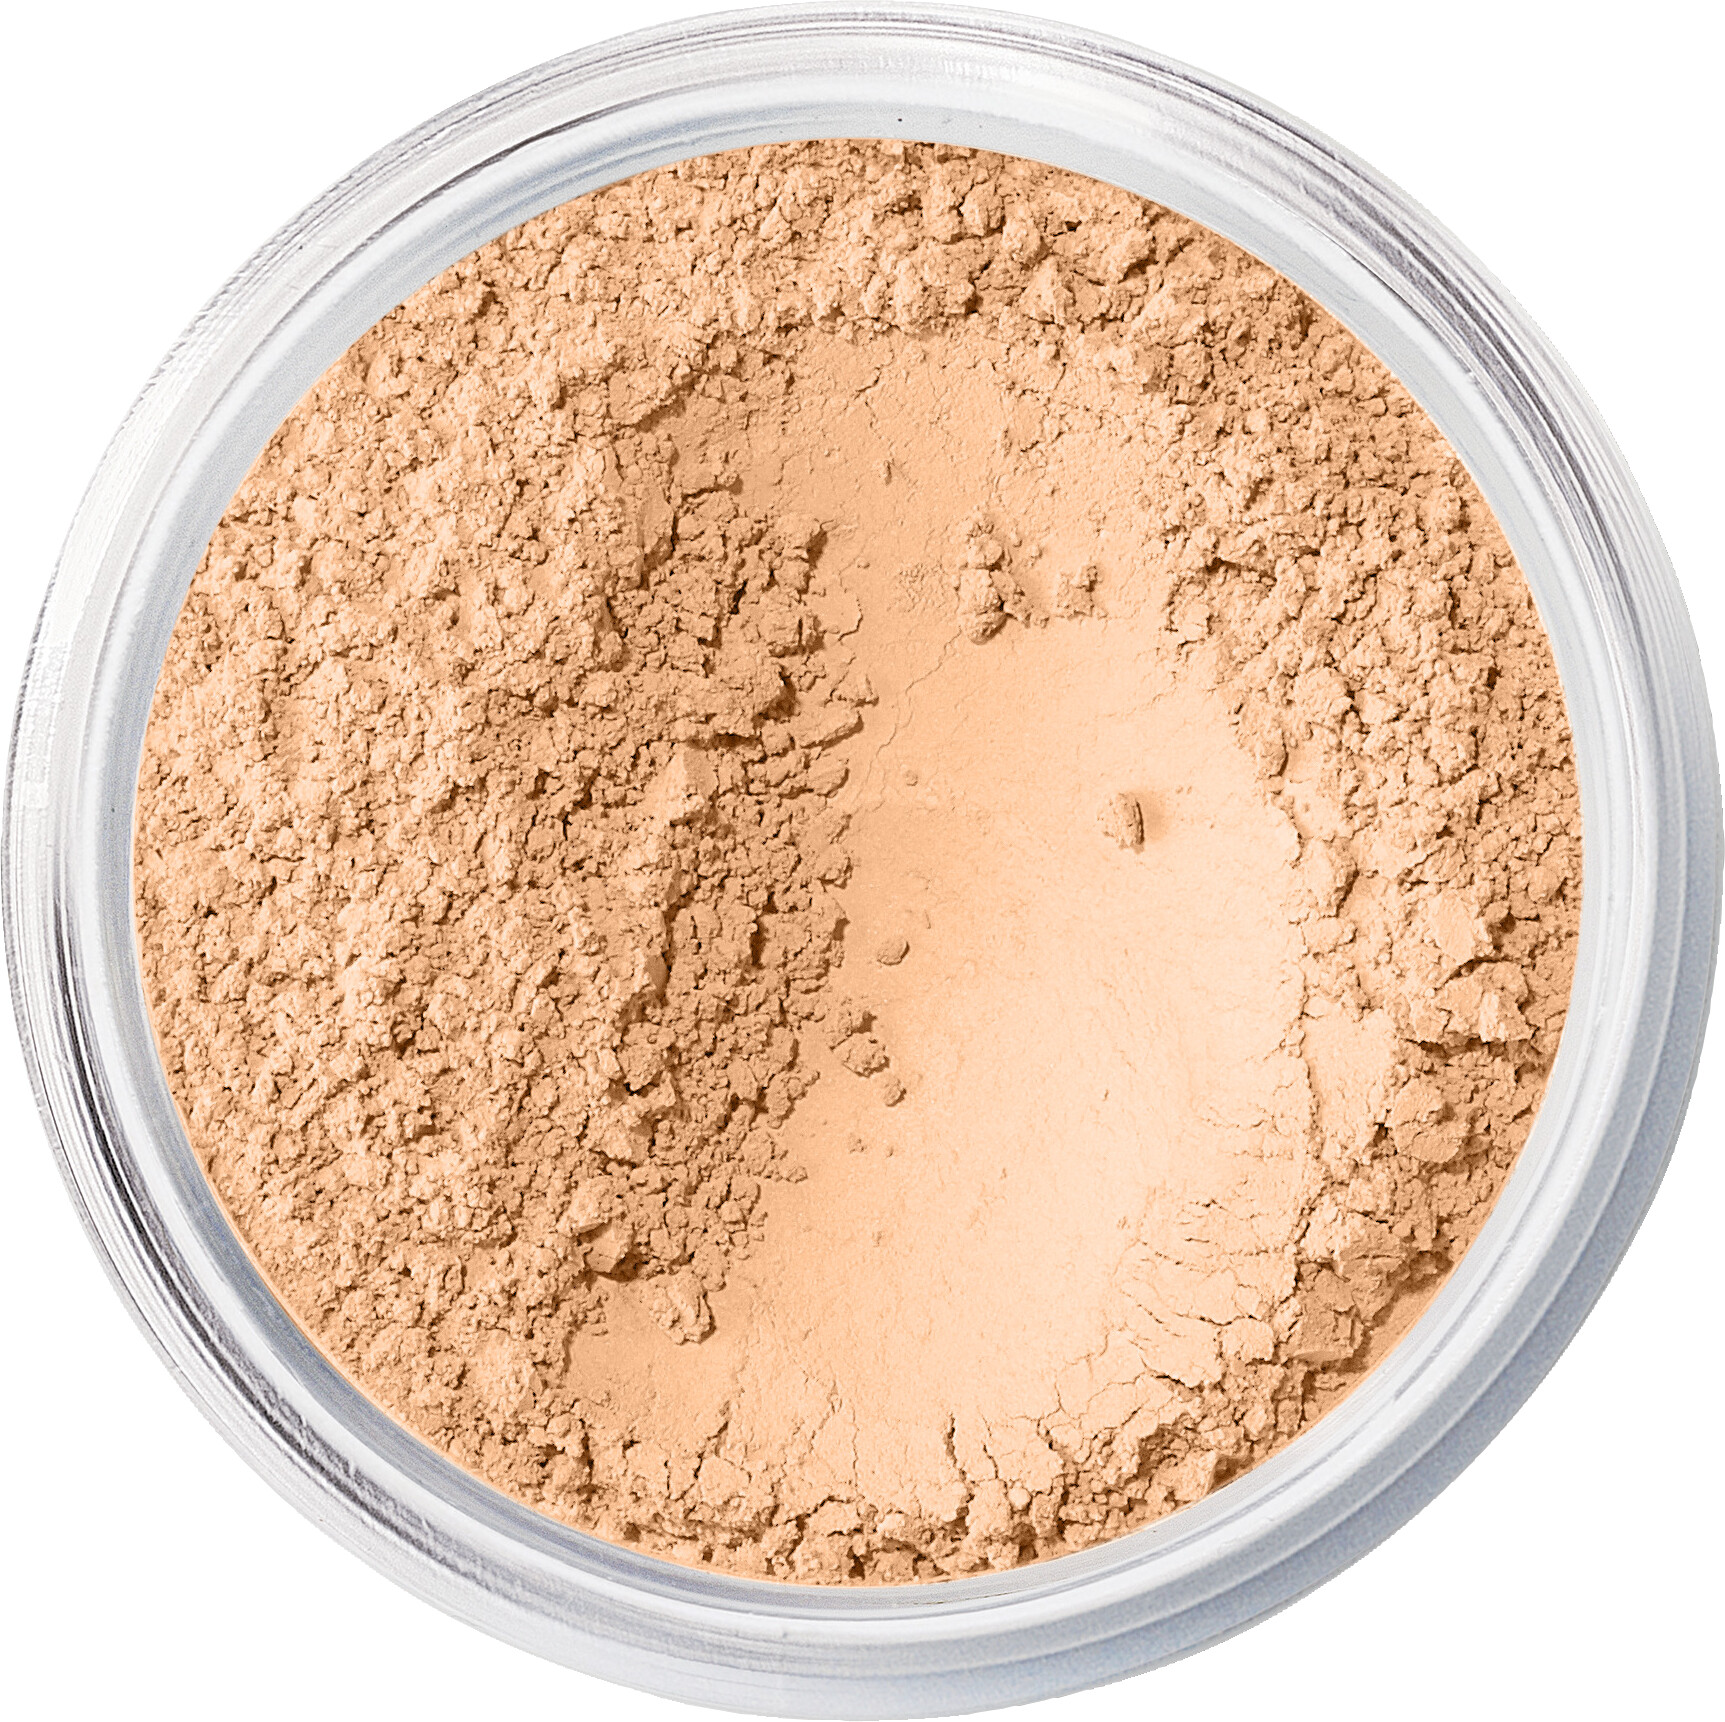 bareMinerals Original SPF15 Foundation with Locking Sifter 8g 06  Neutral Ivory